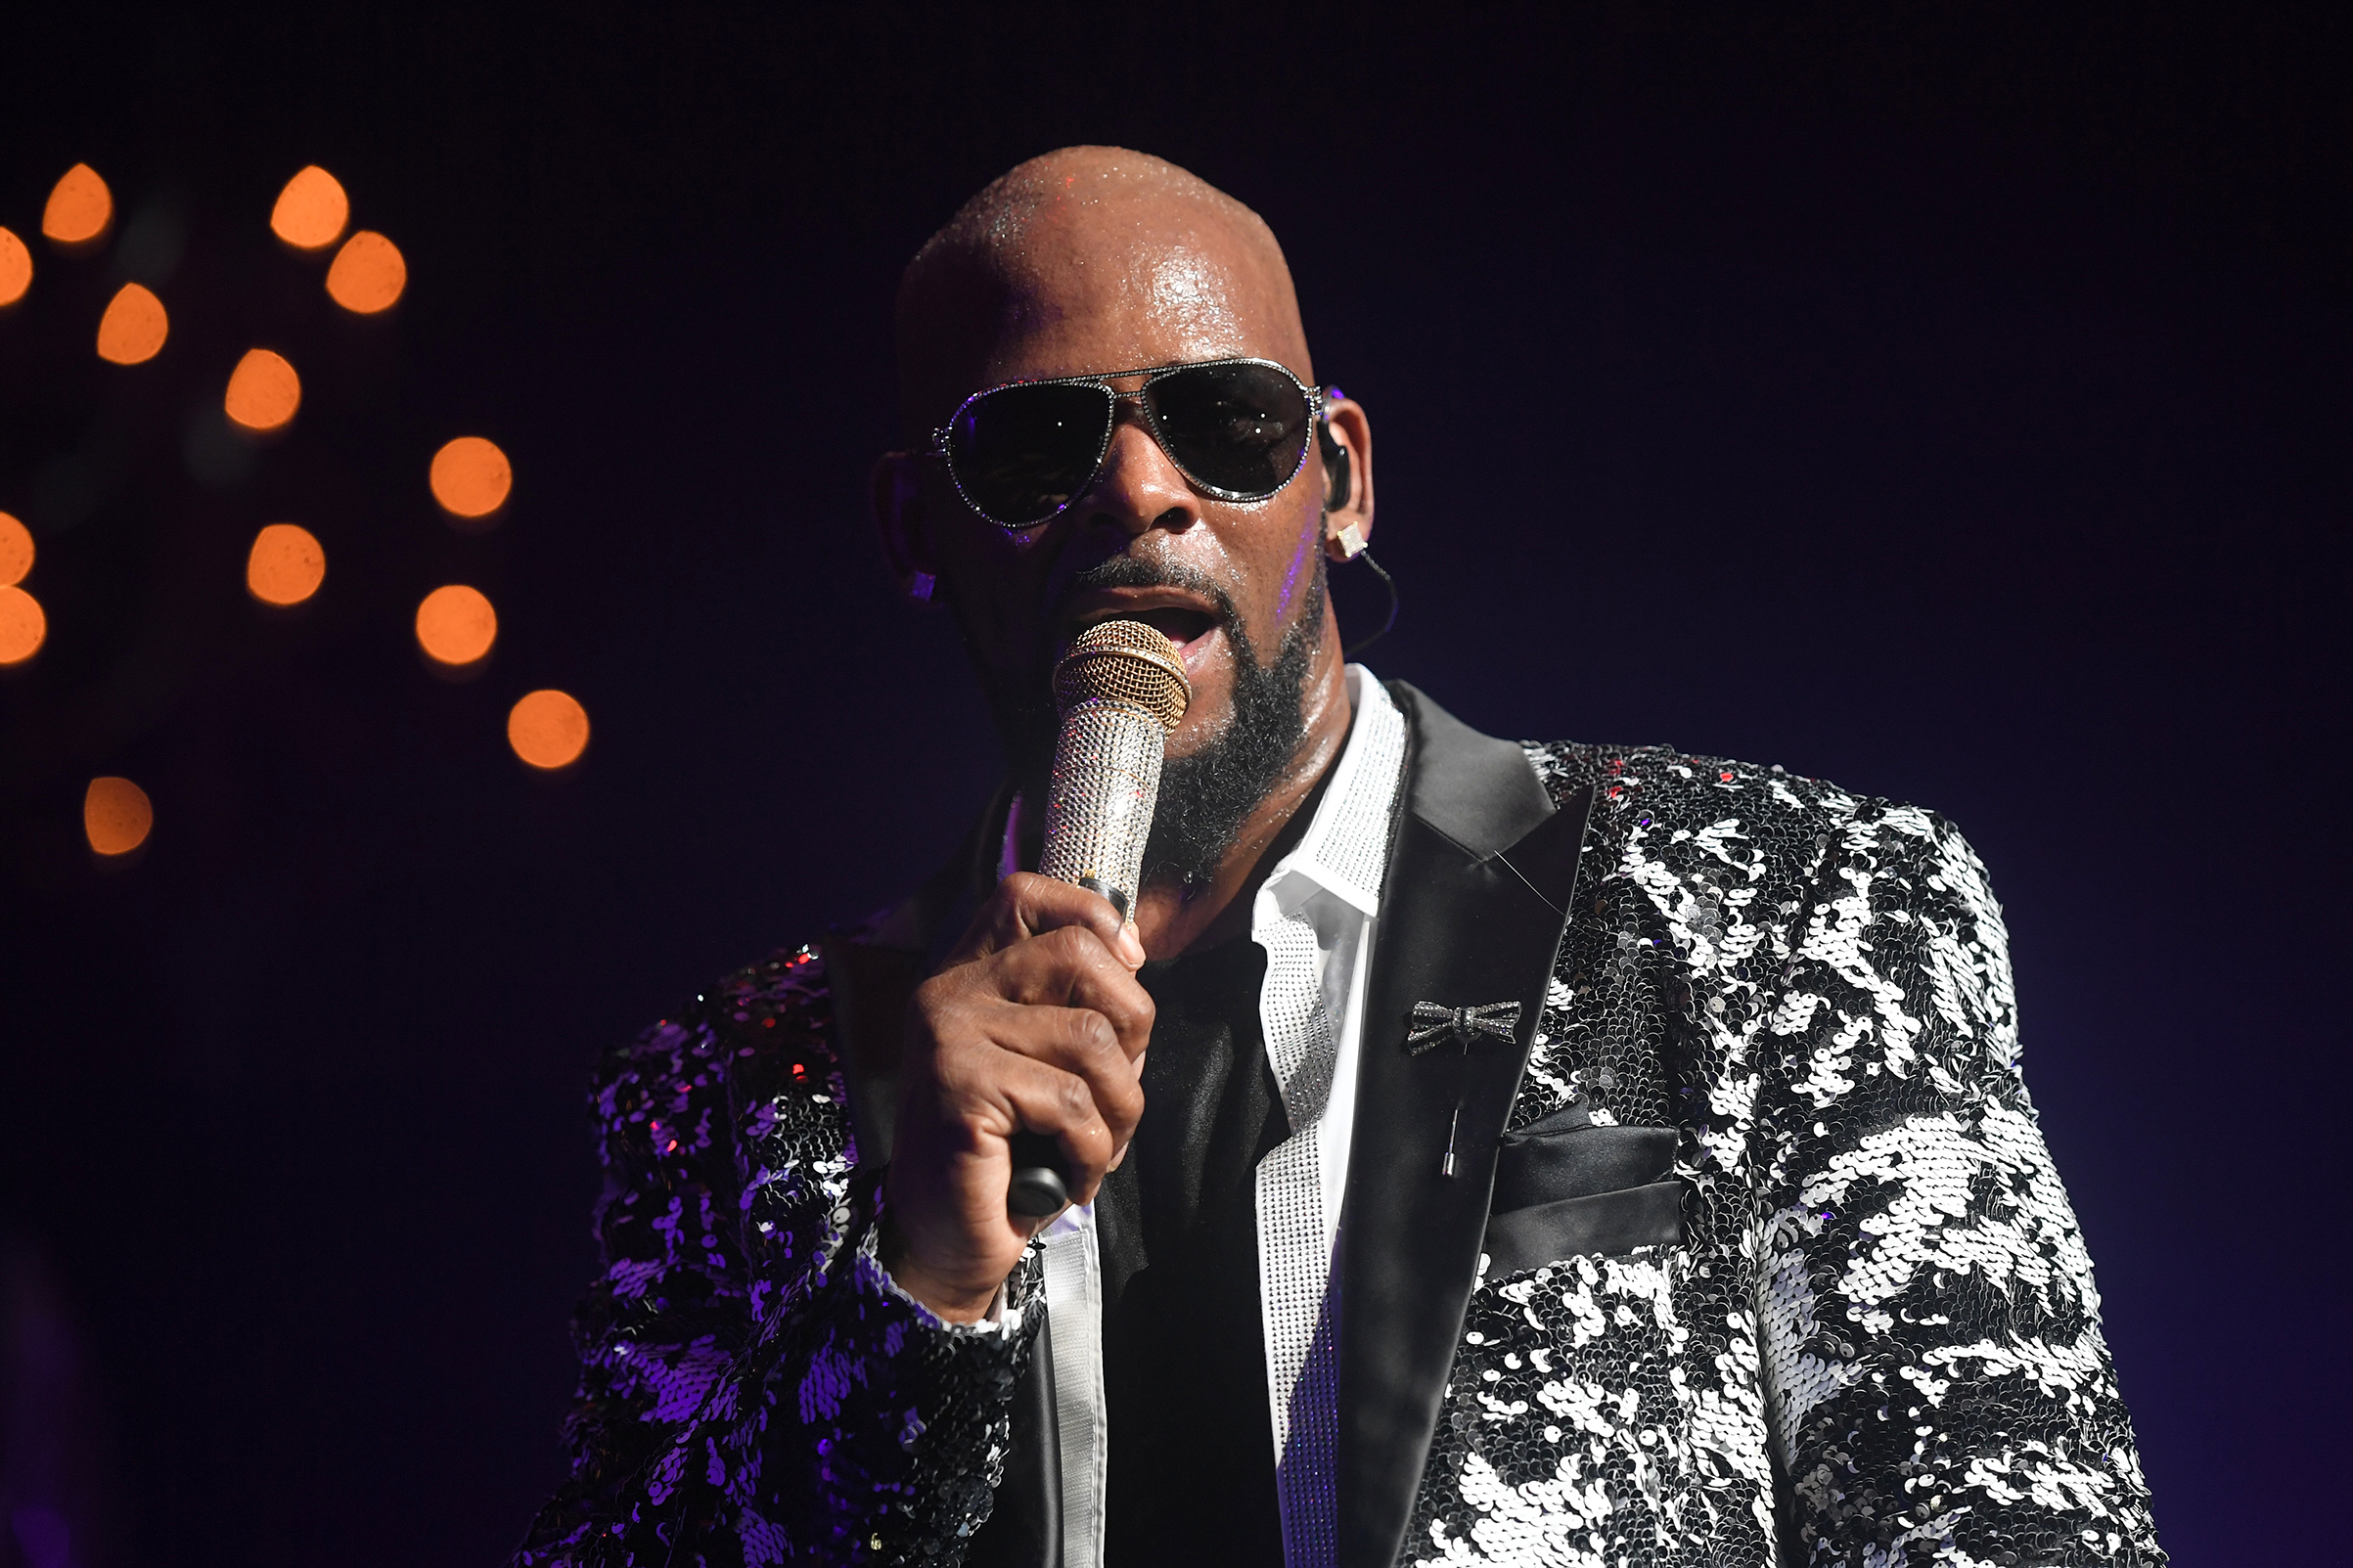 R. Kelly performs during the Holiday Jam at Fox Theater in Atlanta on Dec. 27, 2016.